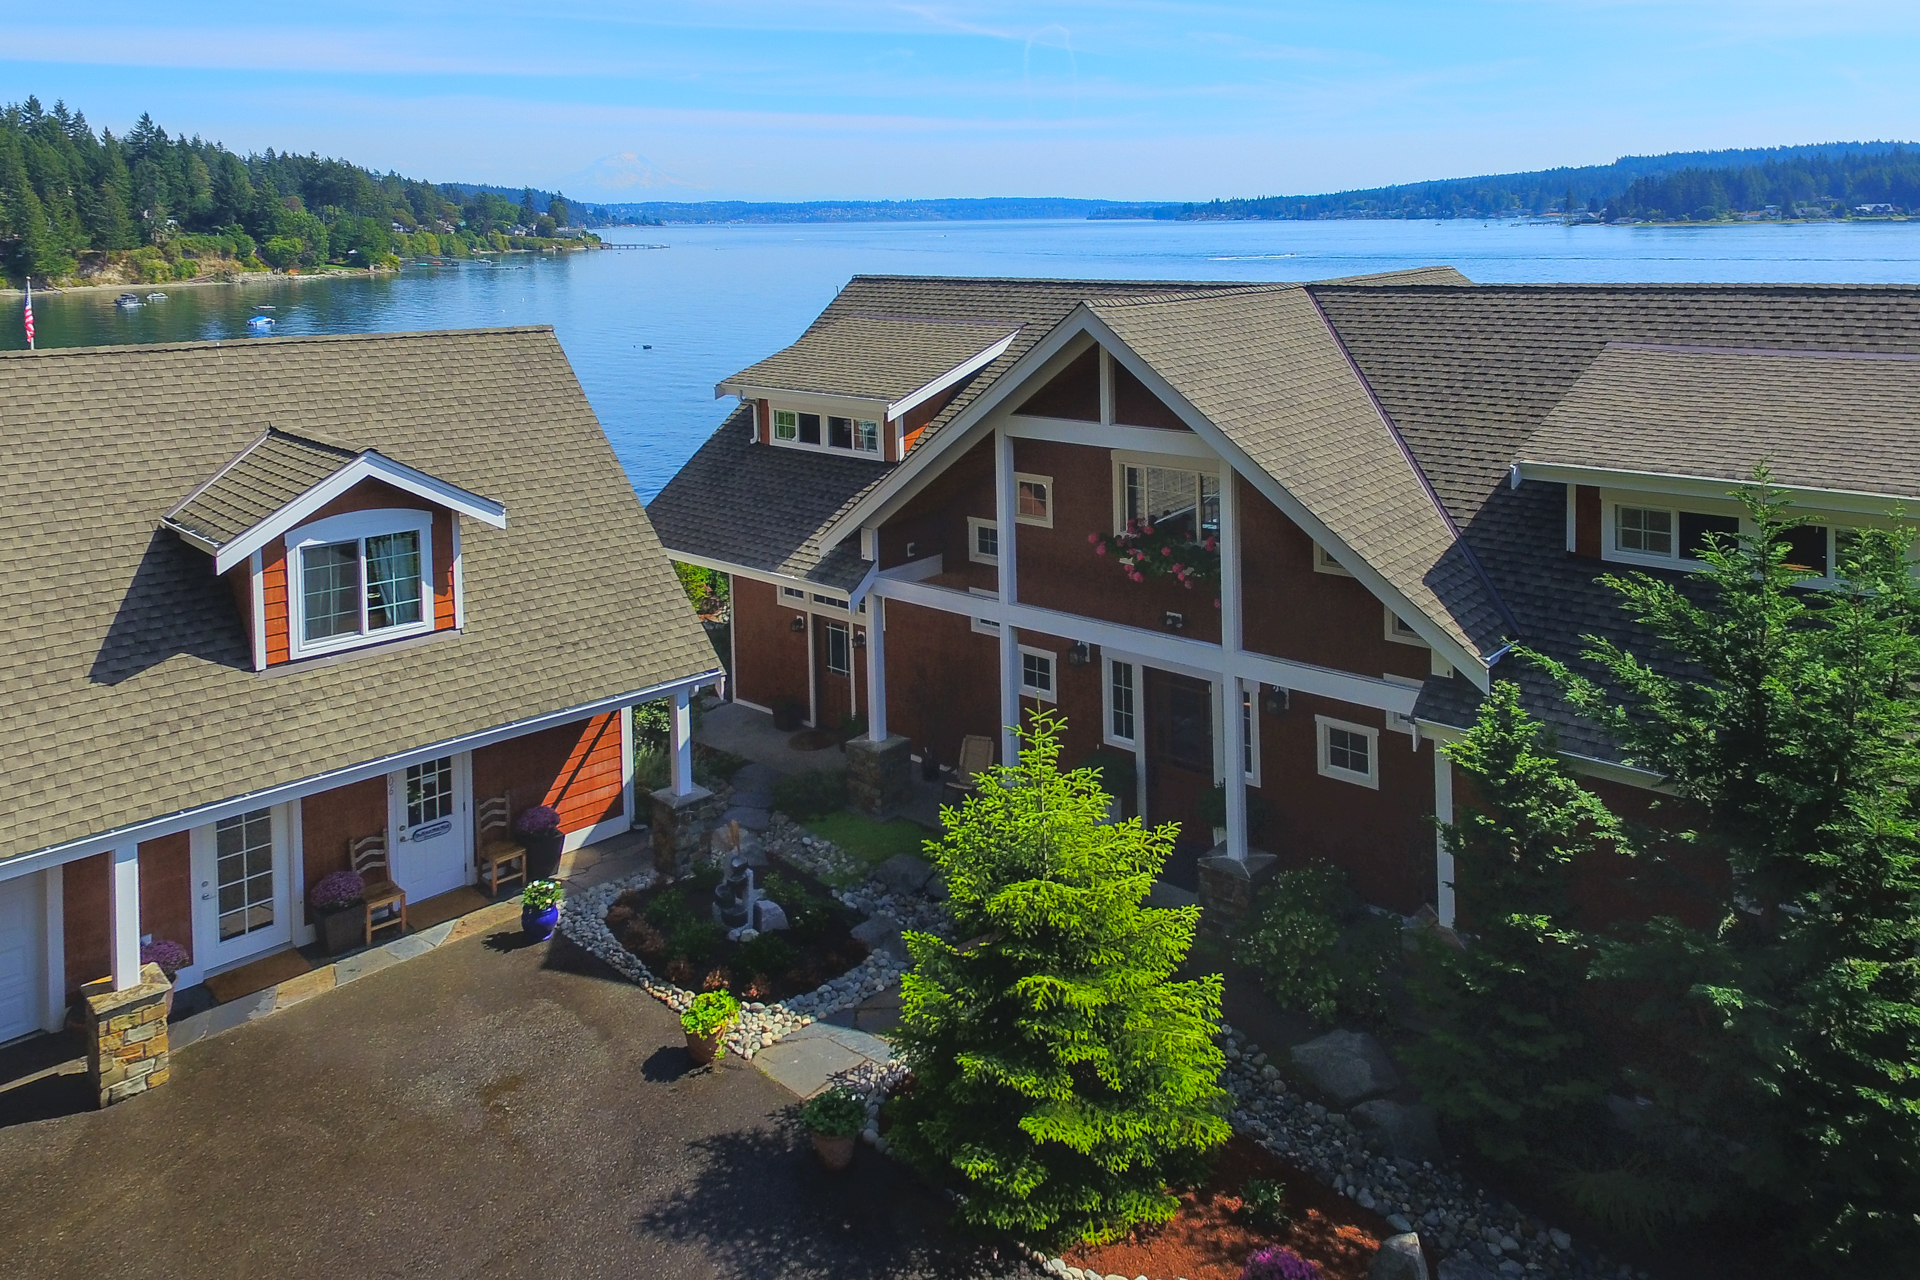 Single Family Home for Sale at Sunny Bay Living 7102 Ford Drive NW Gig Harbor, Washington, 98335 United States